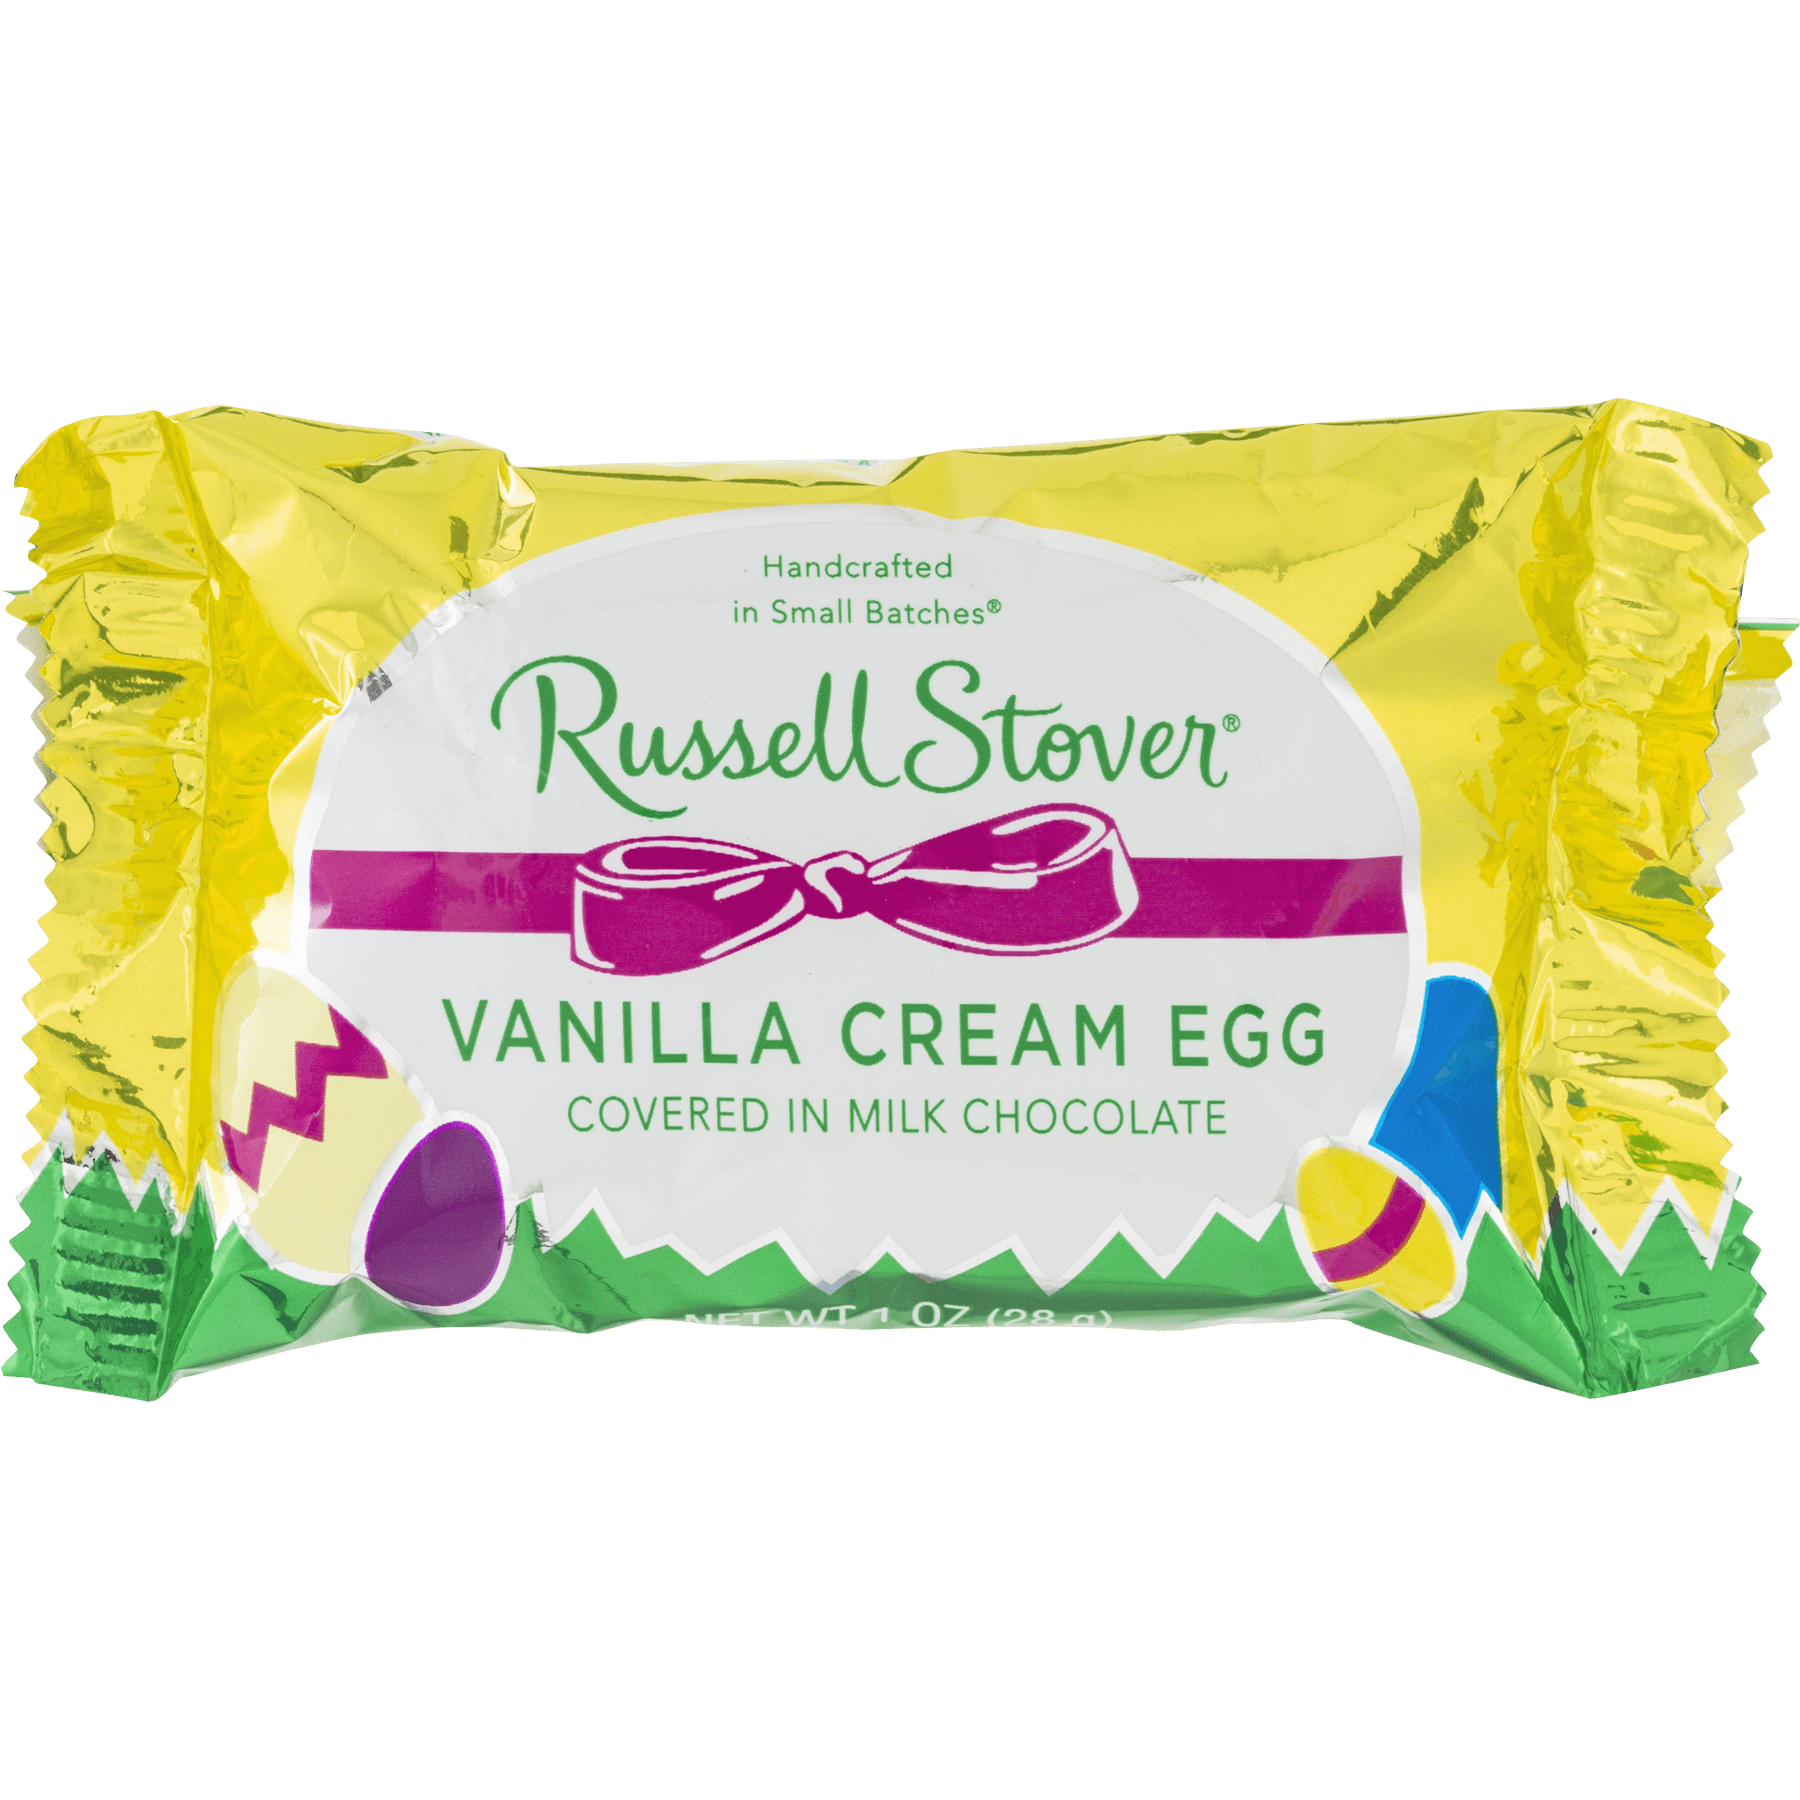 russell stover vanilla cream egg in milk chocolate, 1.0 oz - walmart